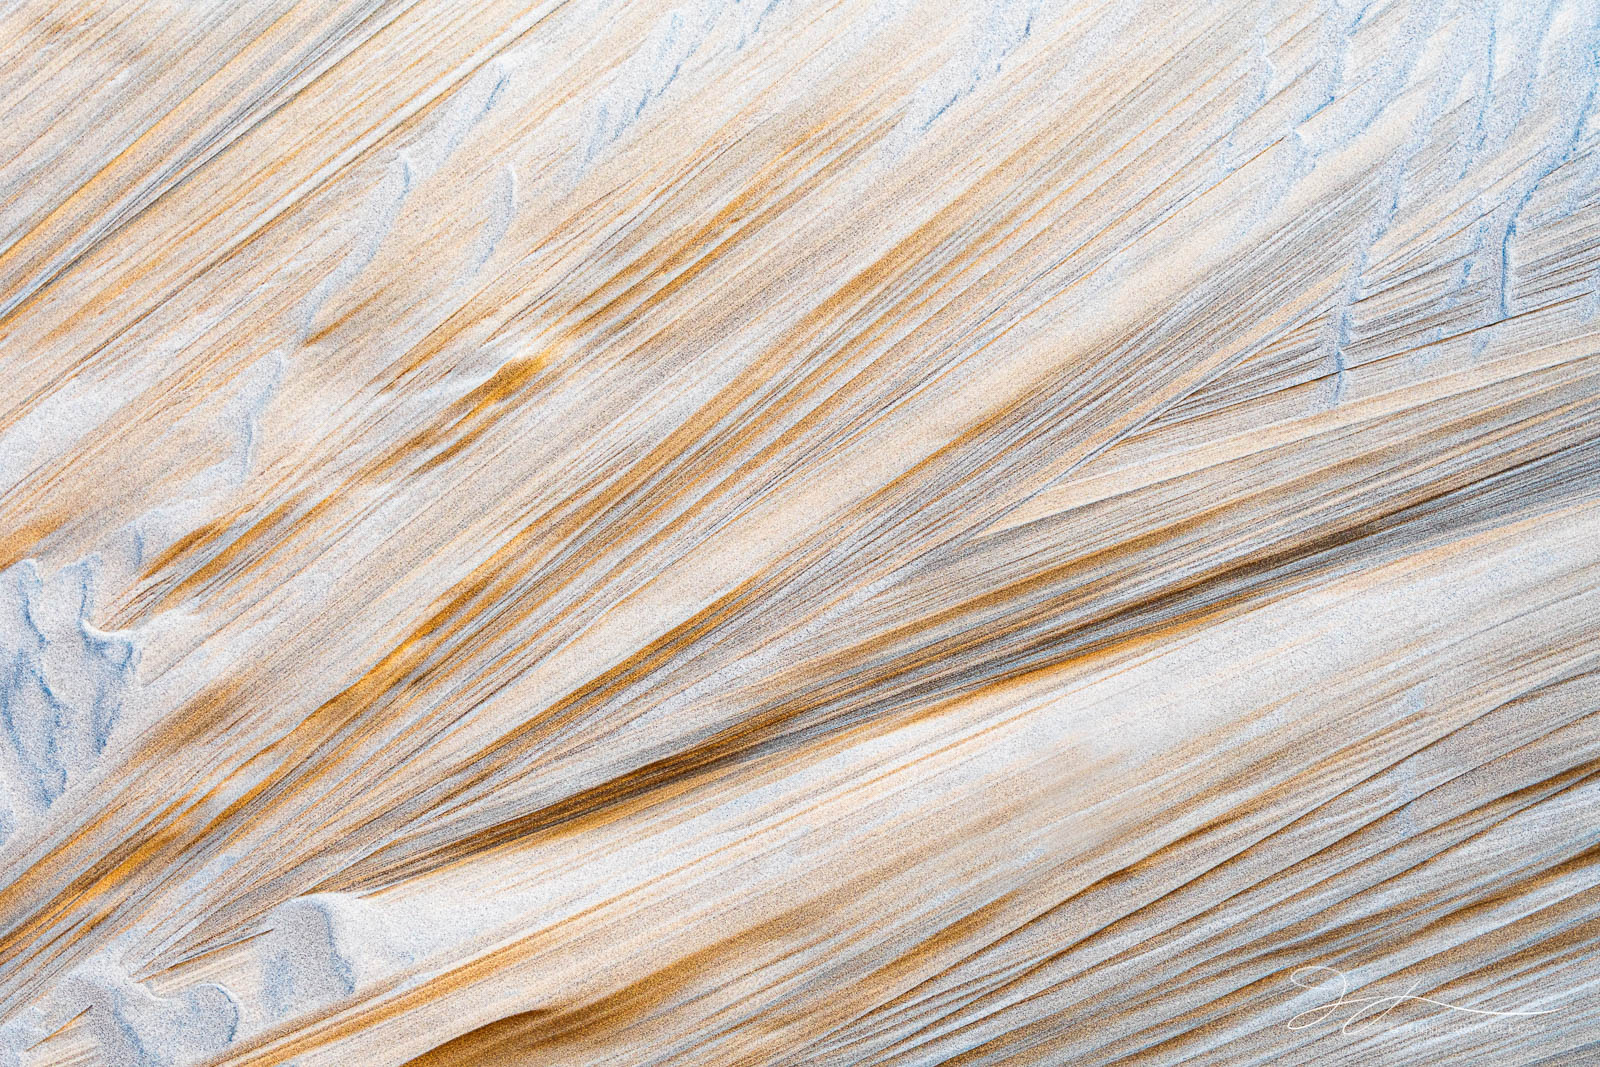 Death Valley National Park, Mojave Desert, abstract photography, California, textures, sand, Mesquite Dunes, patterns, sand, landscape, photo